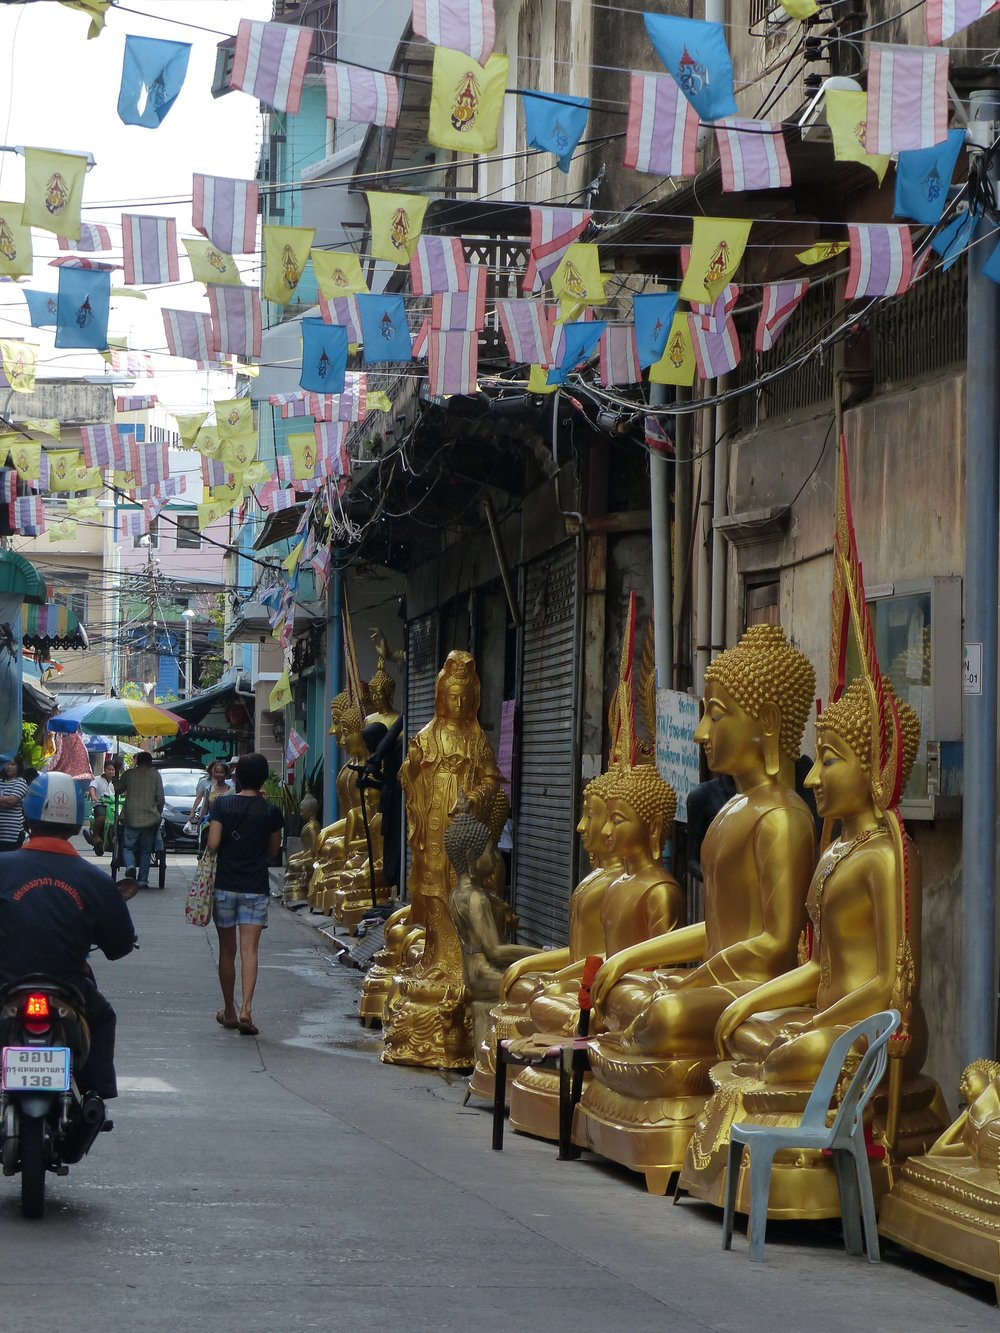 In Bangkok, shops are in districts, this was the shrine district.